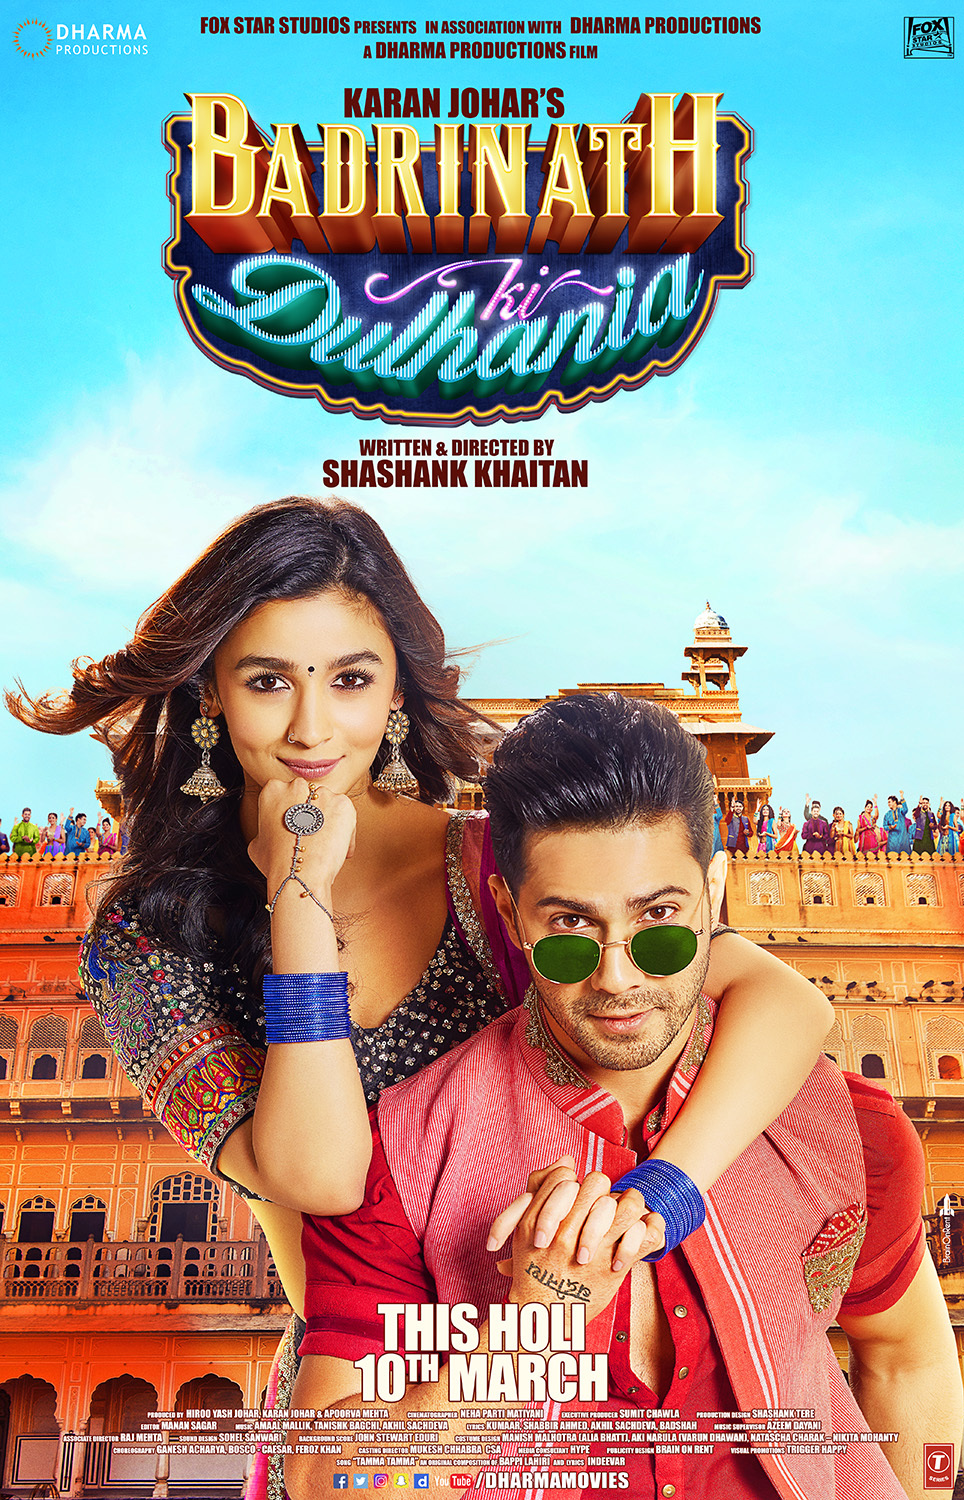 Badrinath Ki Dulhania (2017) Hindi Movie 480p BluRay x264 400MB